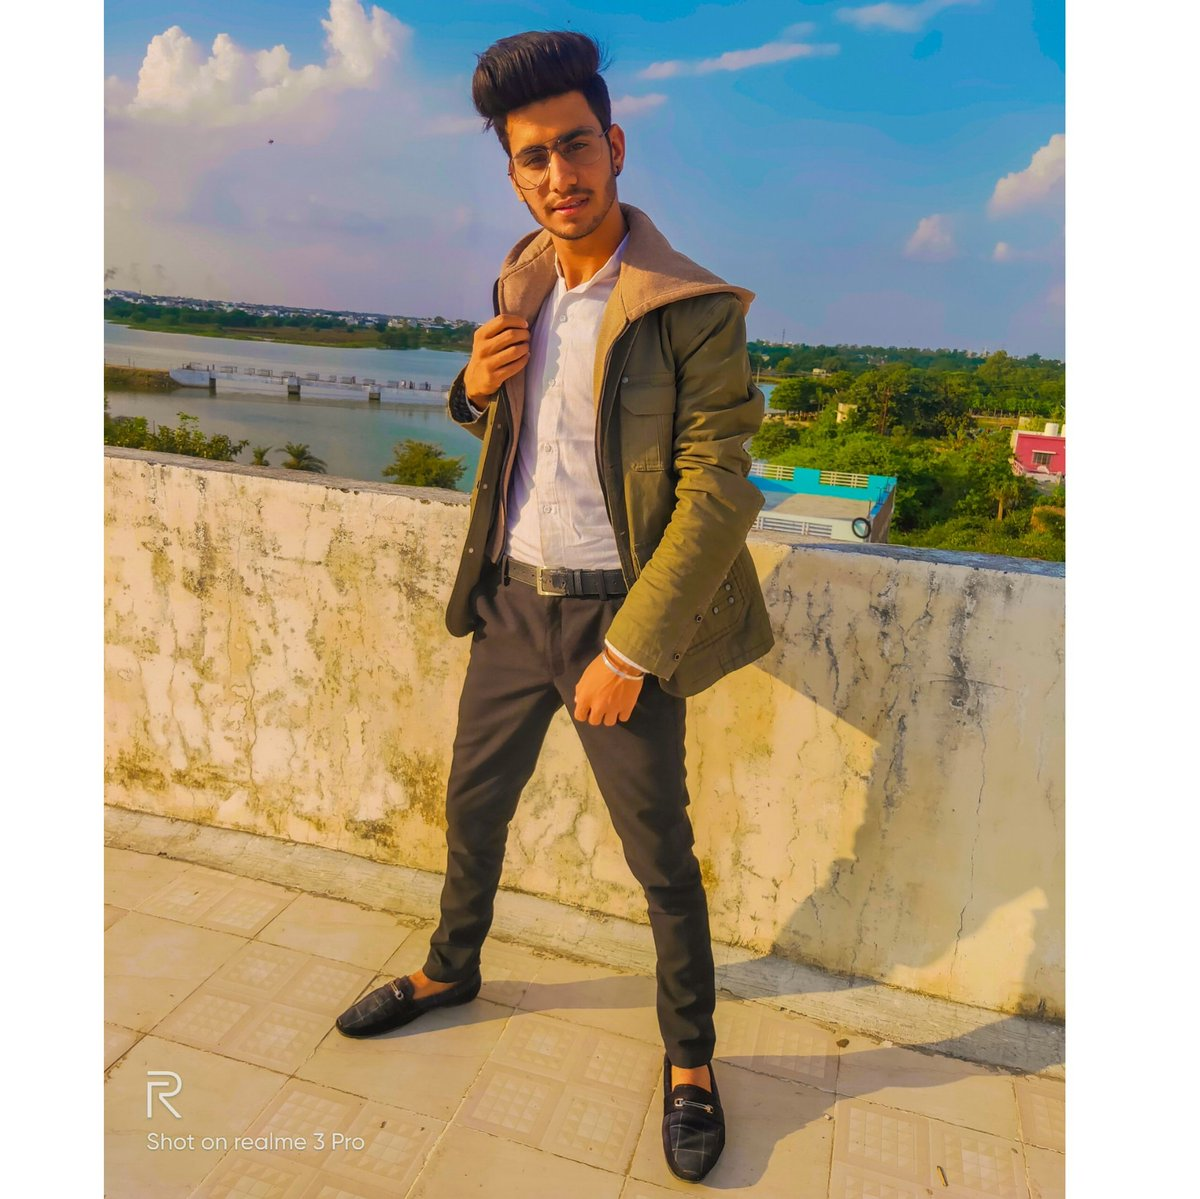 After long time in Twitter 🐦❣️💟 ... #team07  #indianmodel #mr_faisu_07 #andylover #danishzehen  #coolestbadboi #keepsupporting #keeploving #loveuall